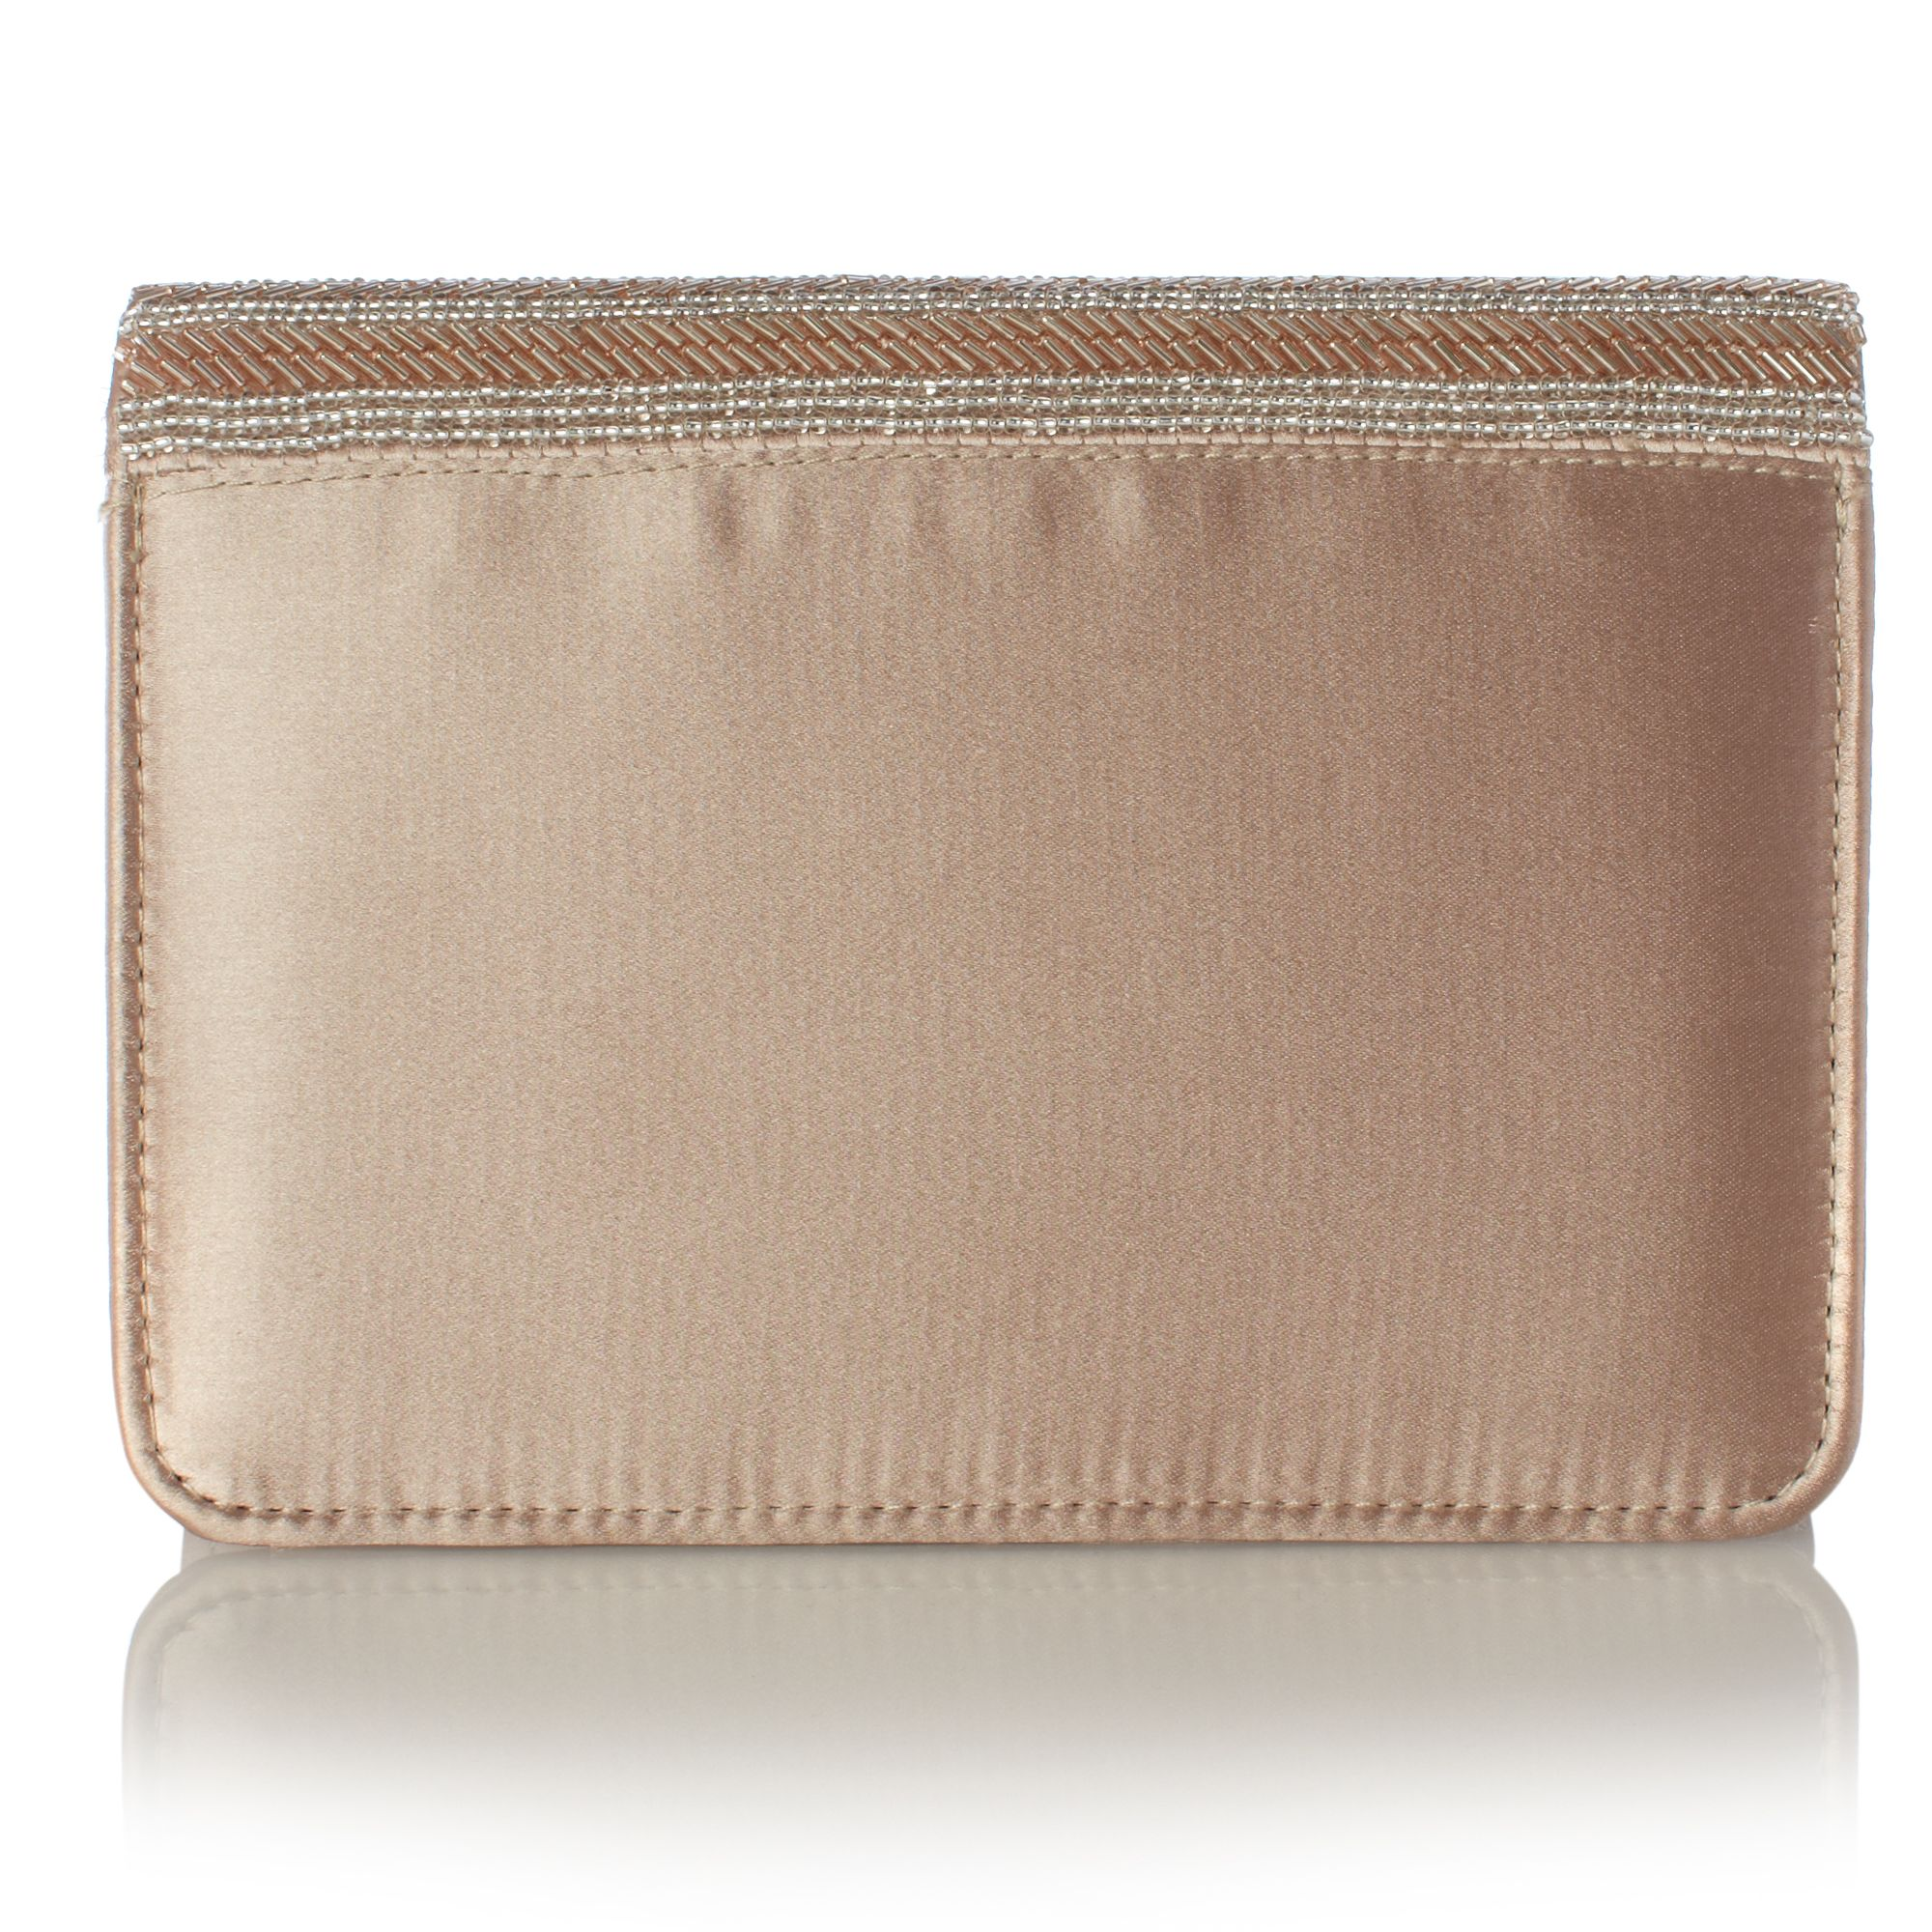 B Dusky U Bugle Bead Clutch Bag